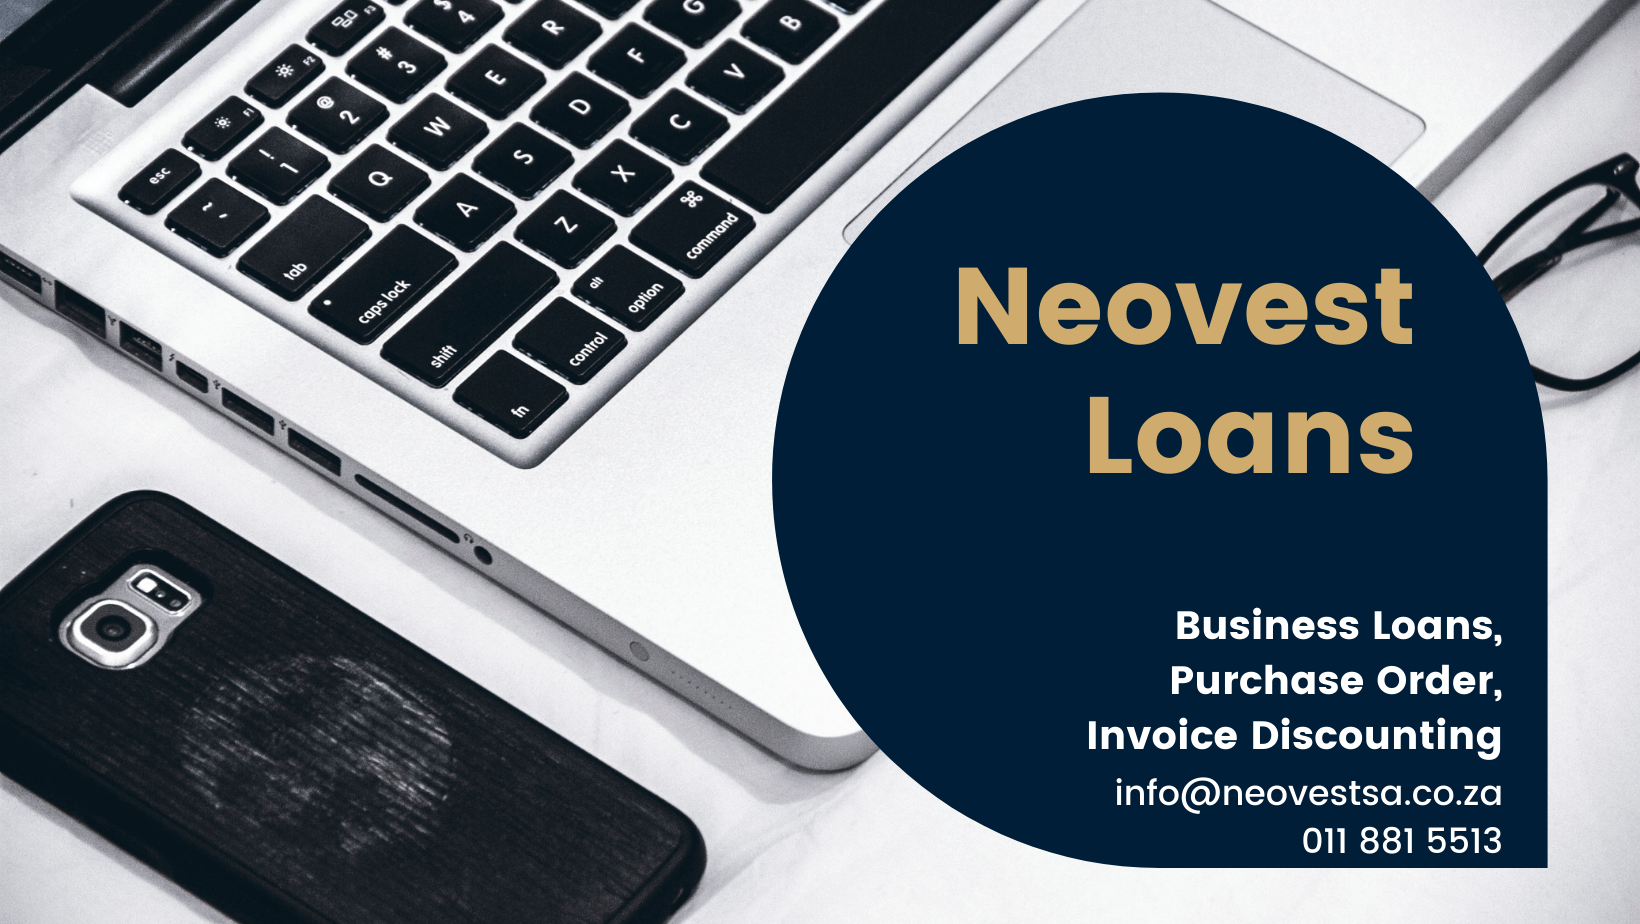 Business Listing for Neovest